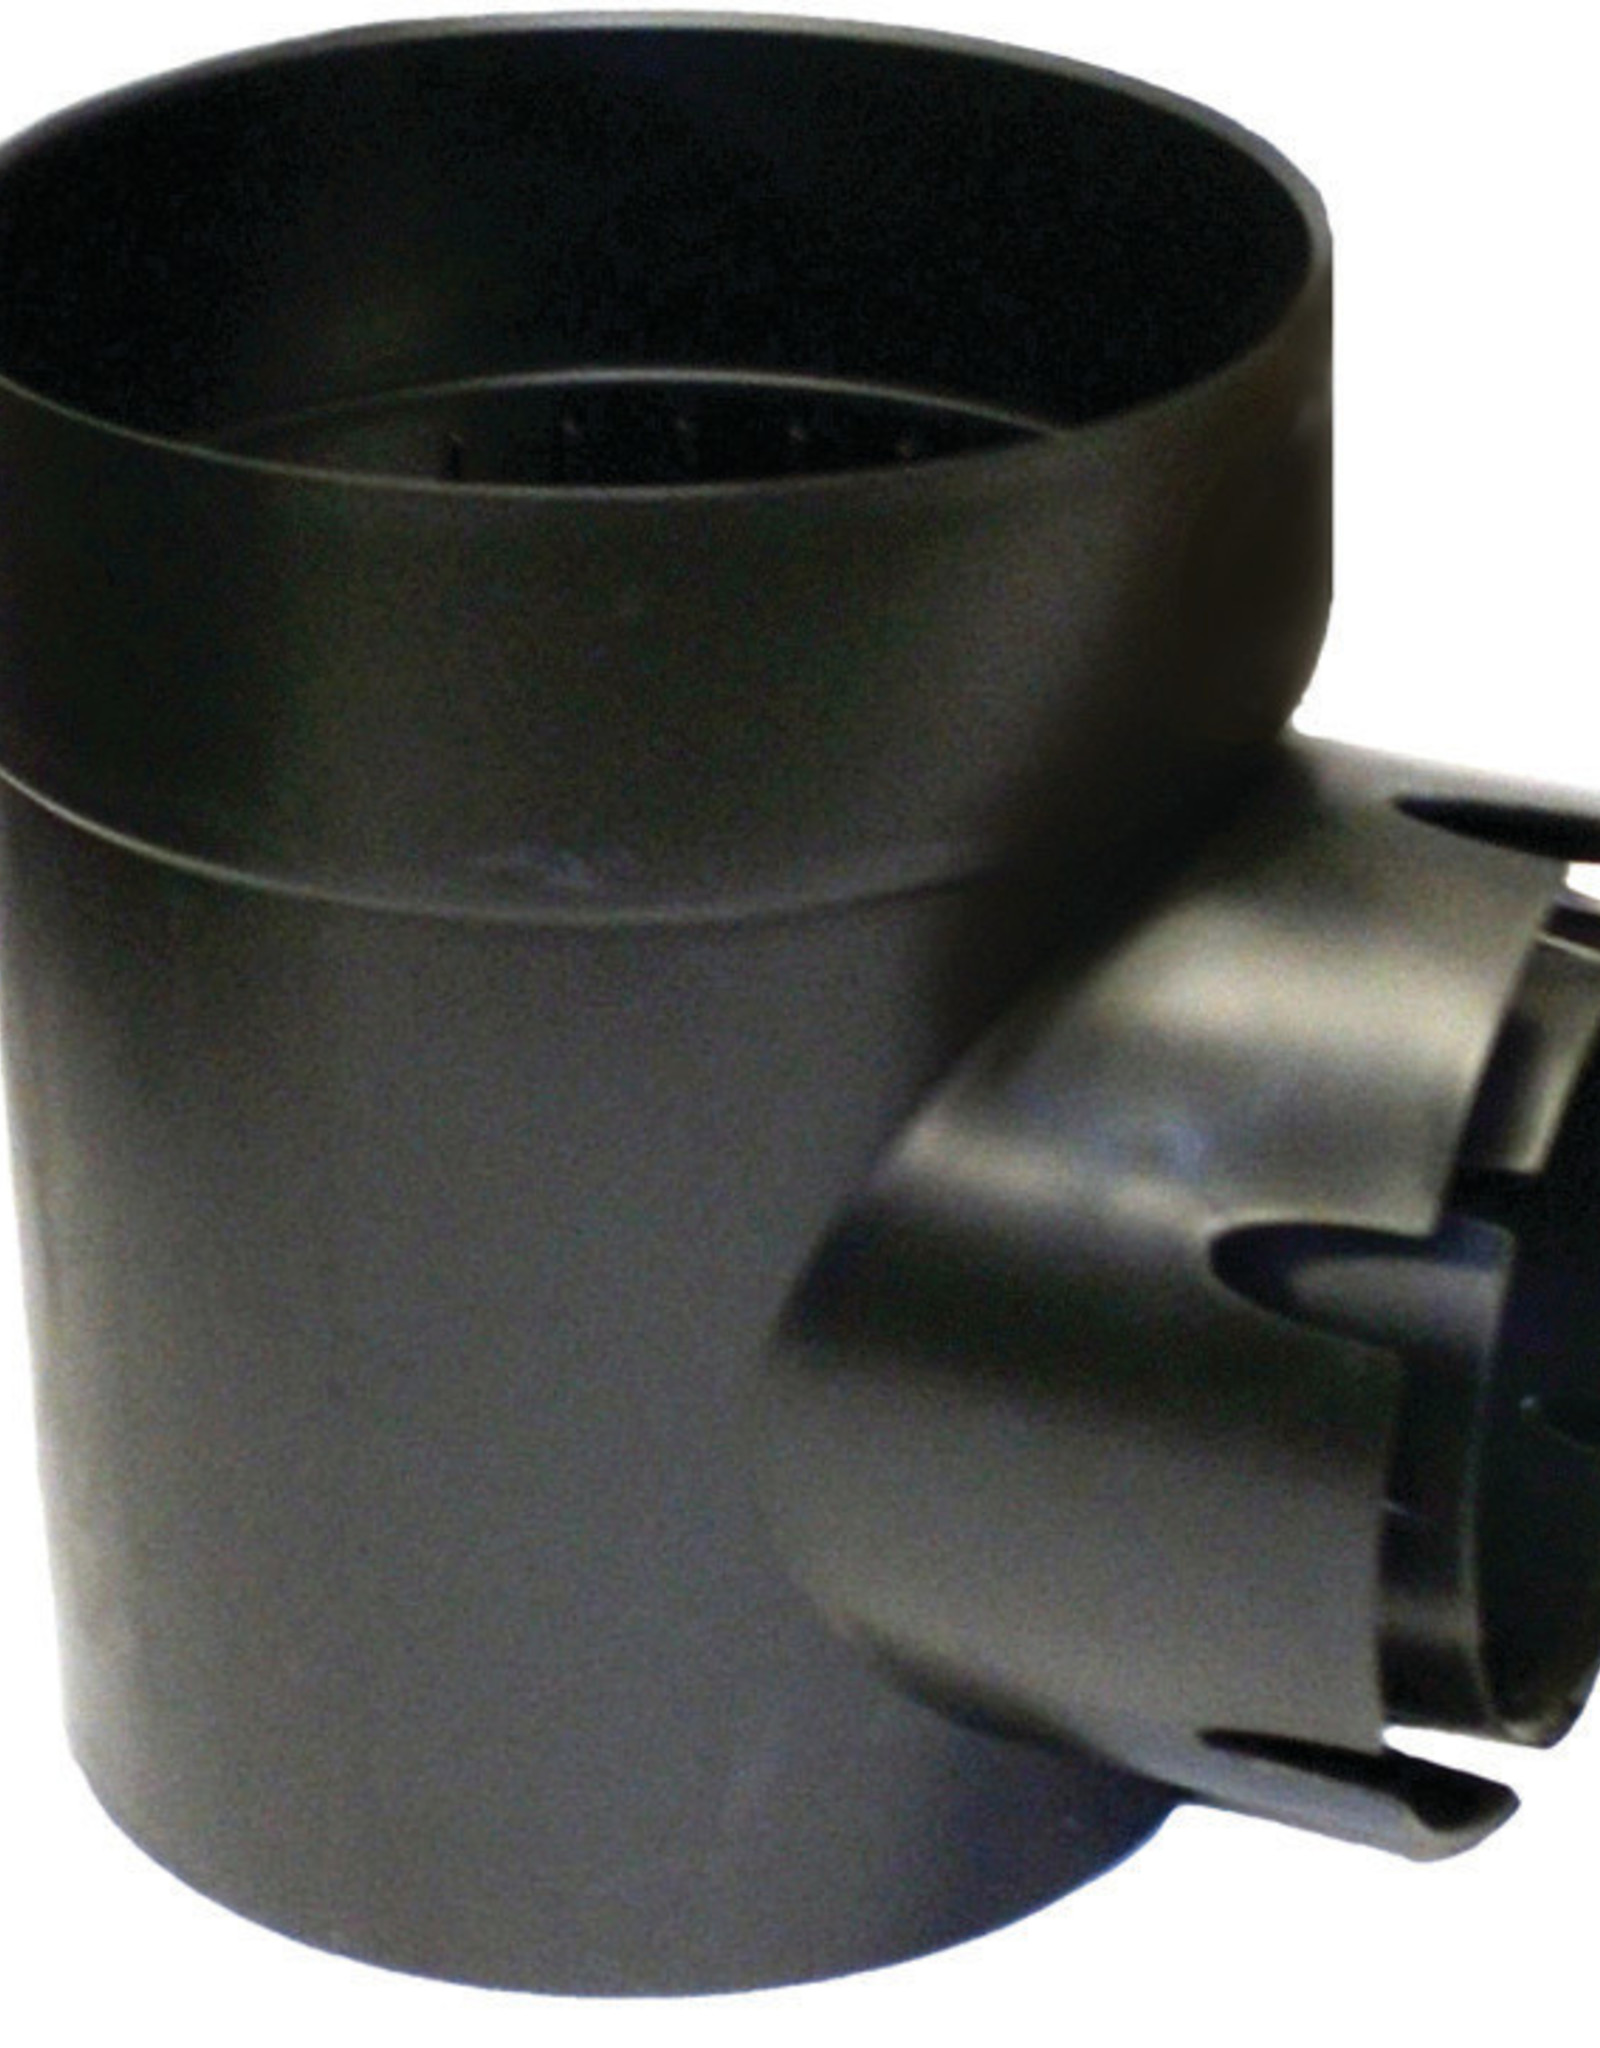 NDS Drainage NDS Spee-D Drain Basin Round Black Plastic 1-Outlet 6 in.